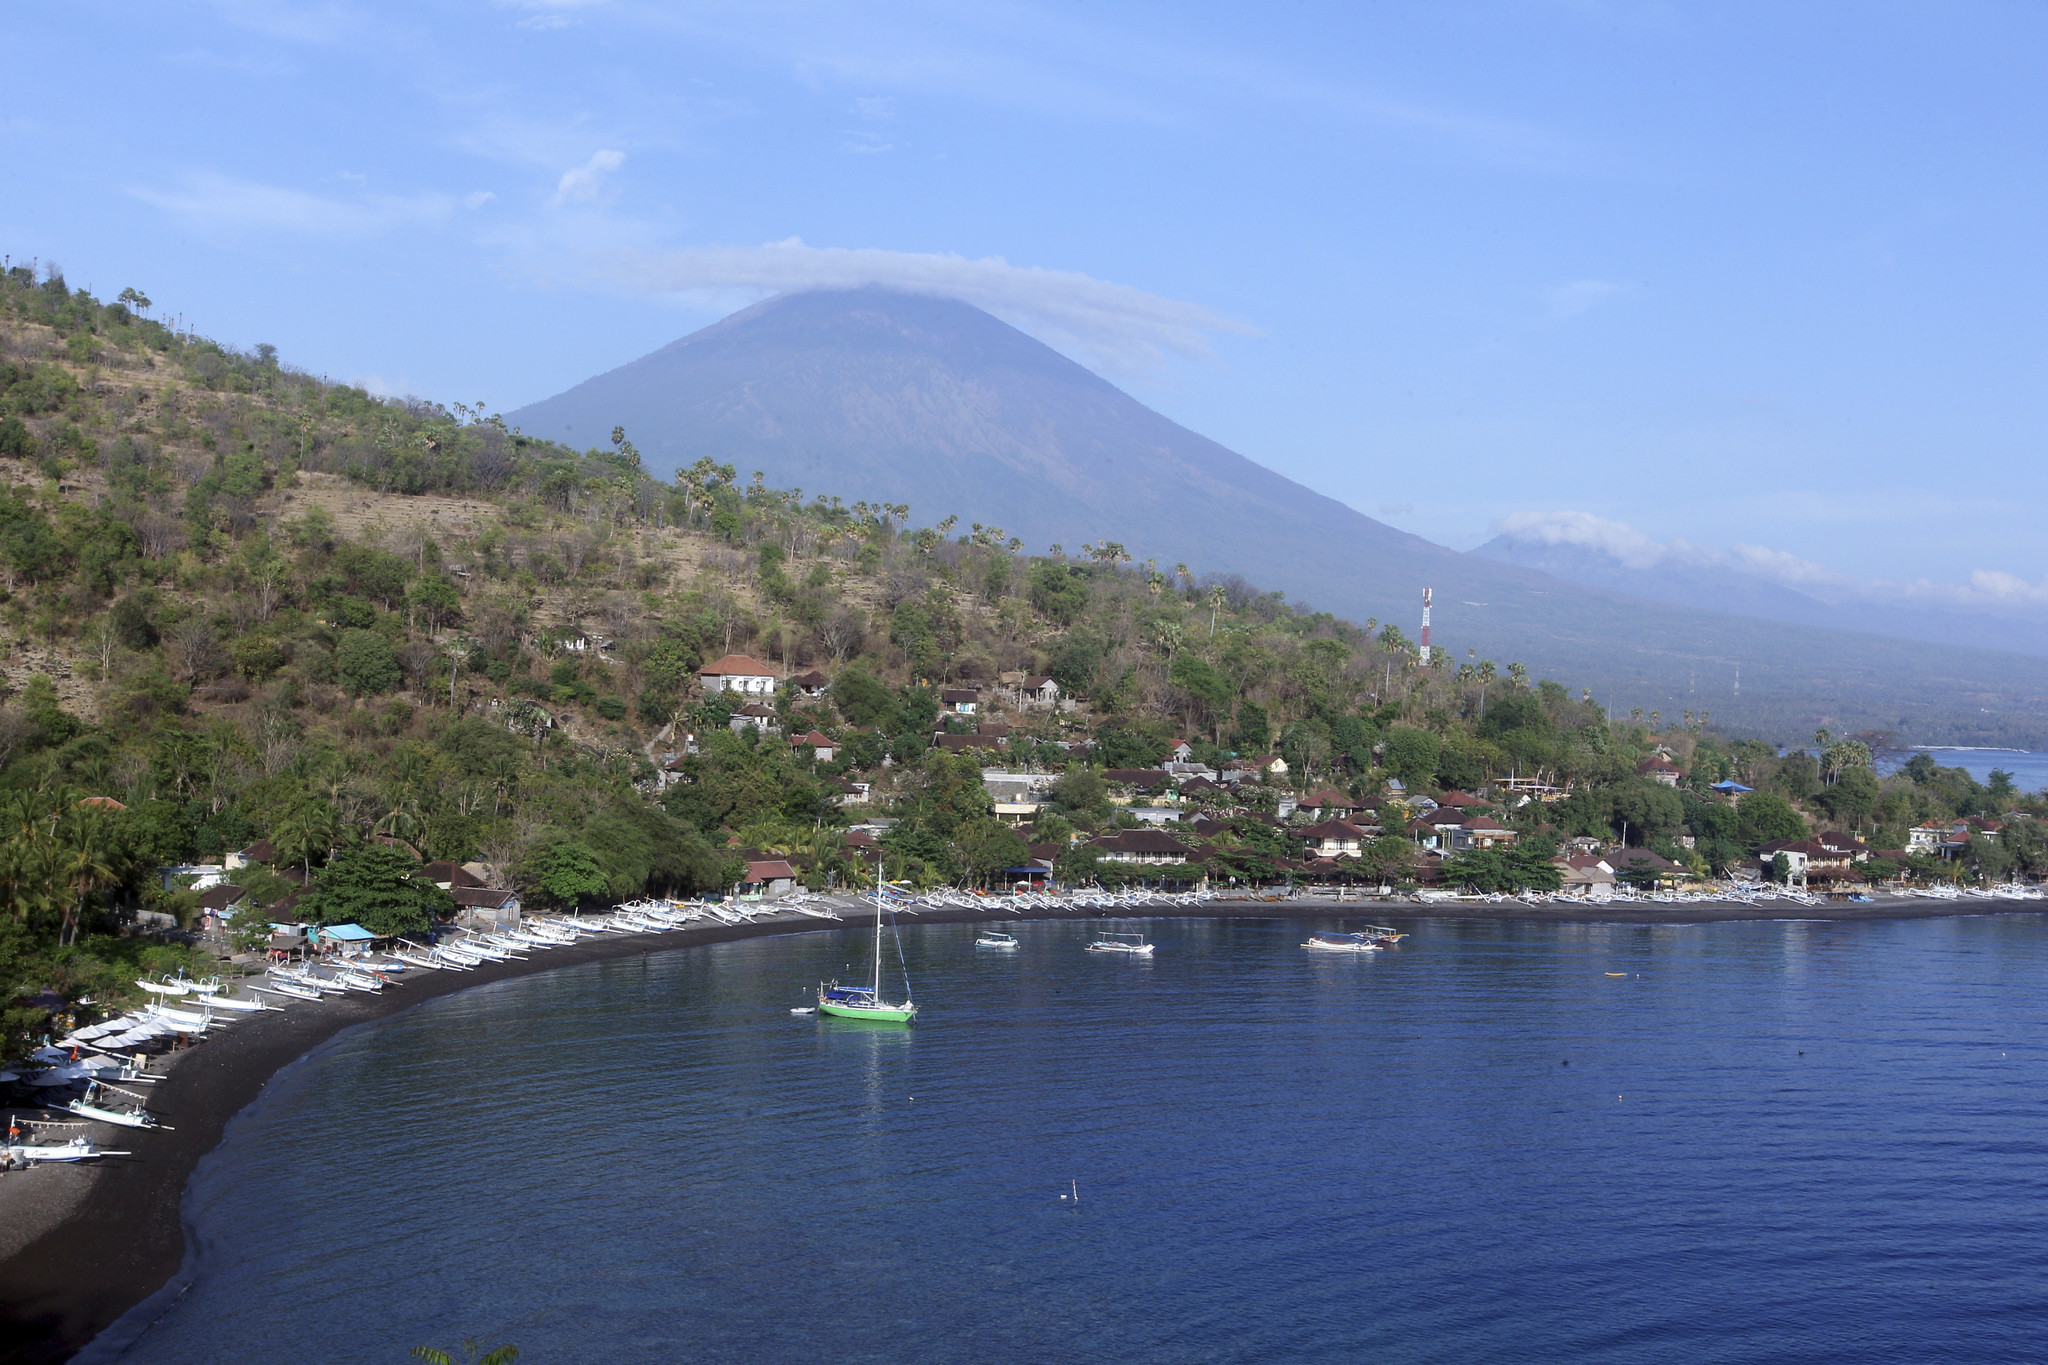 Fears Of Bali Volcano Eruption Spark Exodus Of 75 000 Chicago Tribune